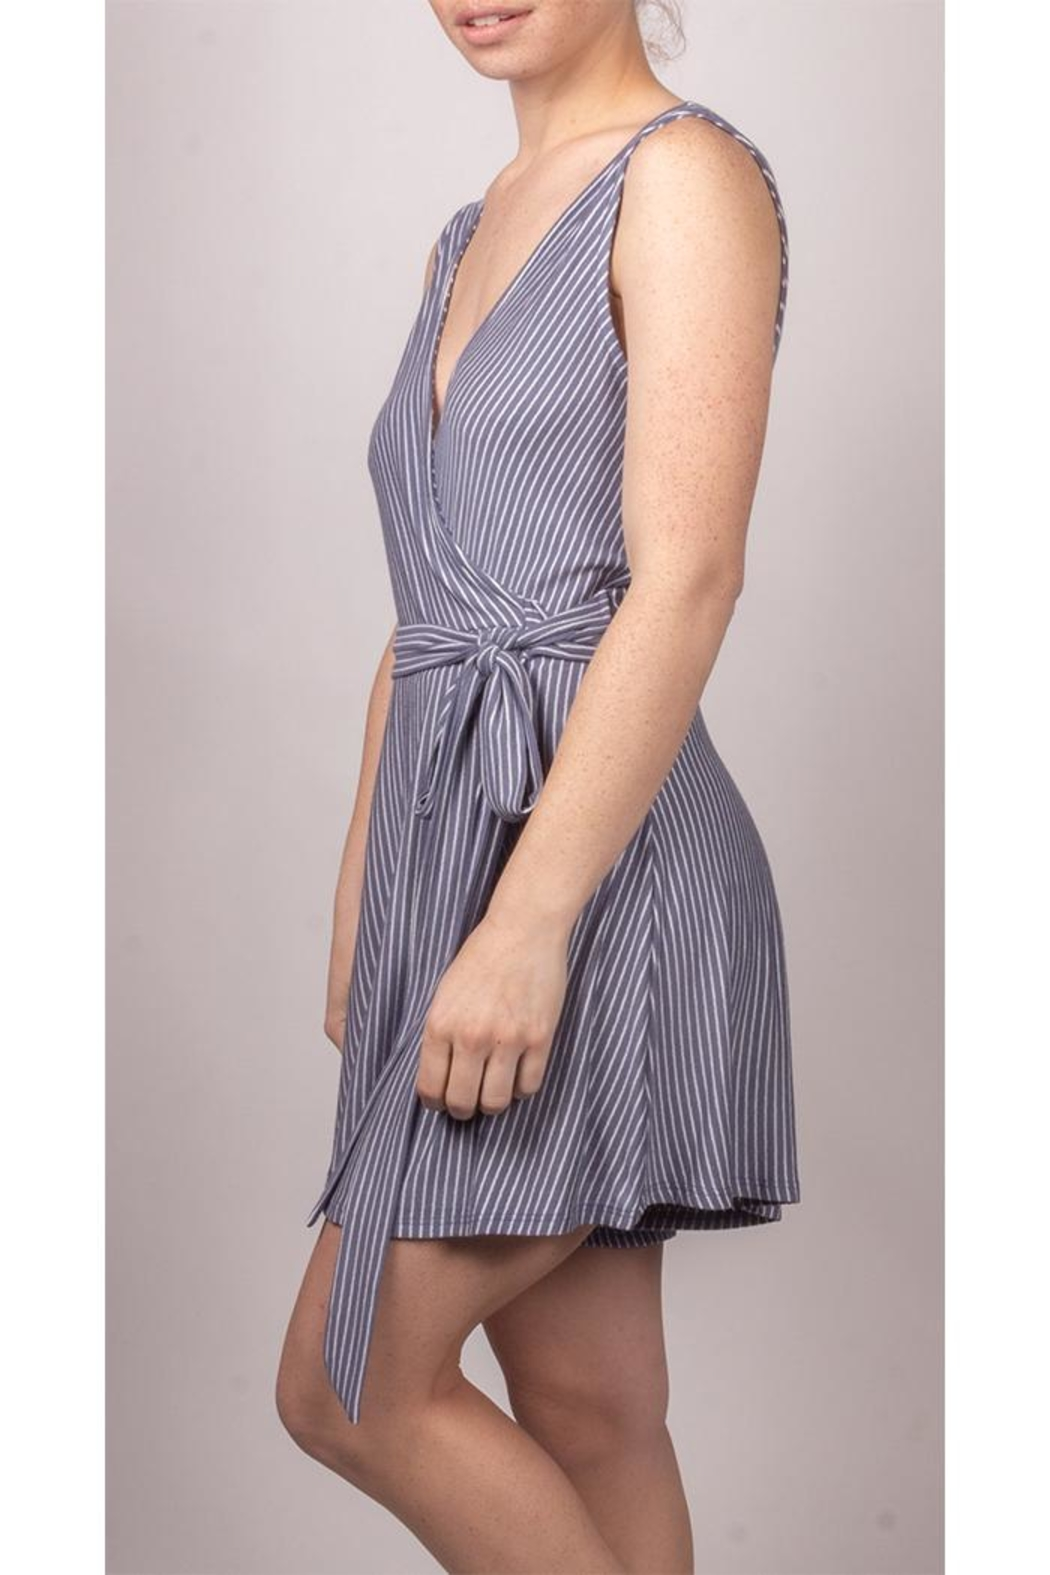 Final Touch Wrap Striped Mini-Dress - Side Cropped Image